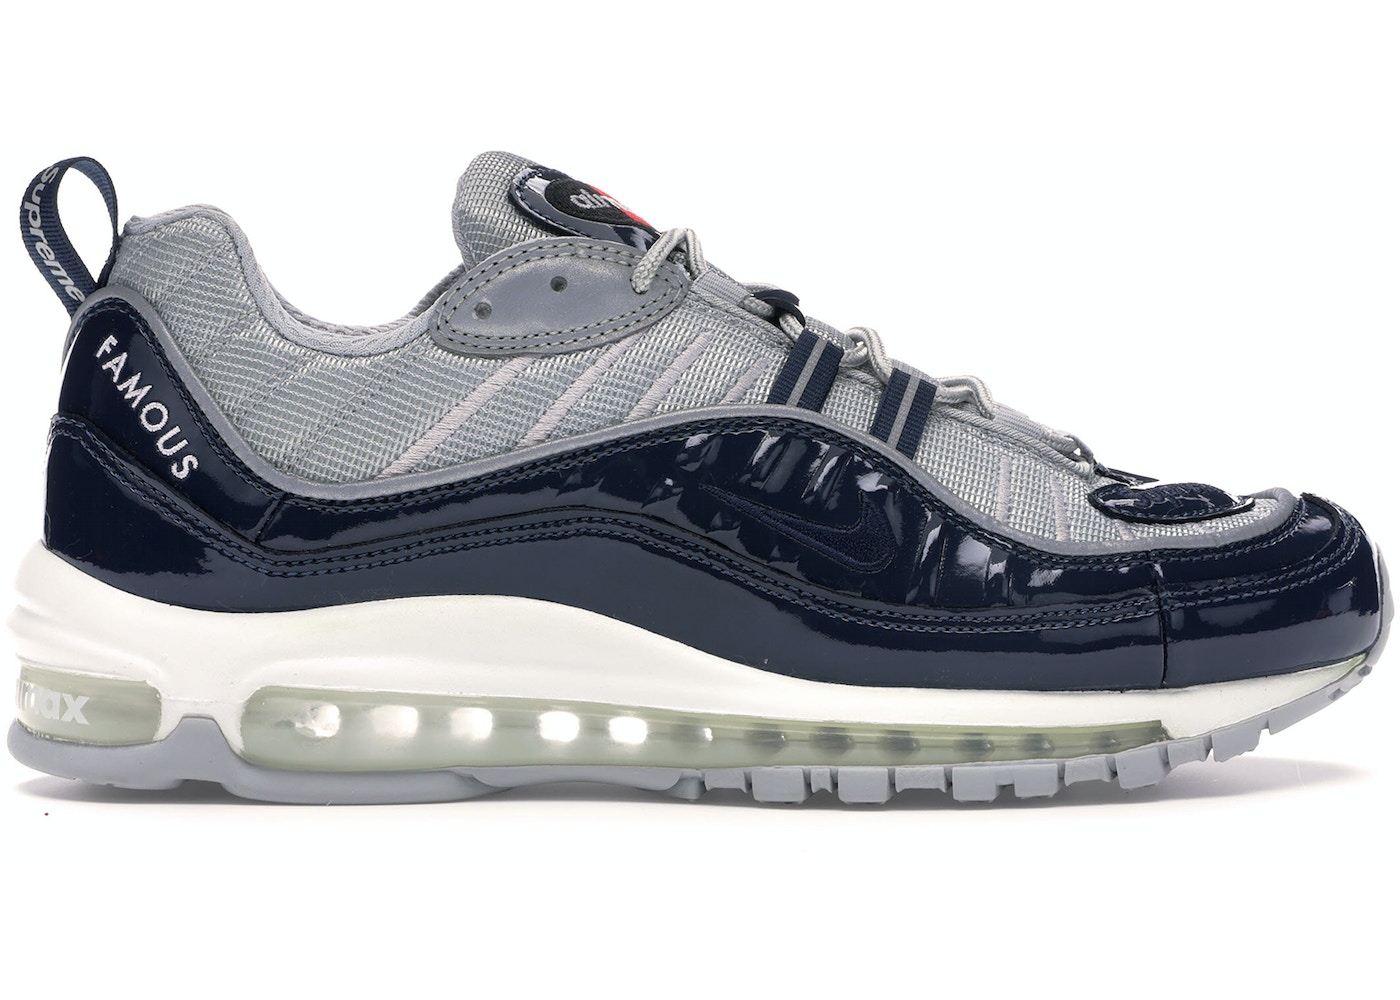 official photos 9ed6b f16a8 Air Max 98 Supreme Obsidian